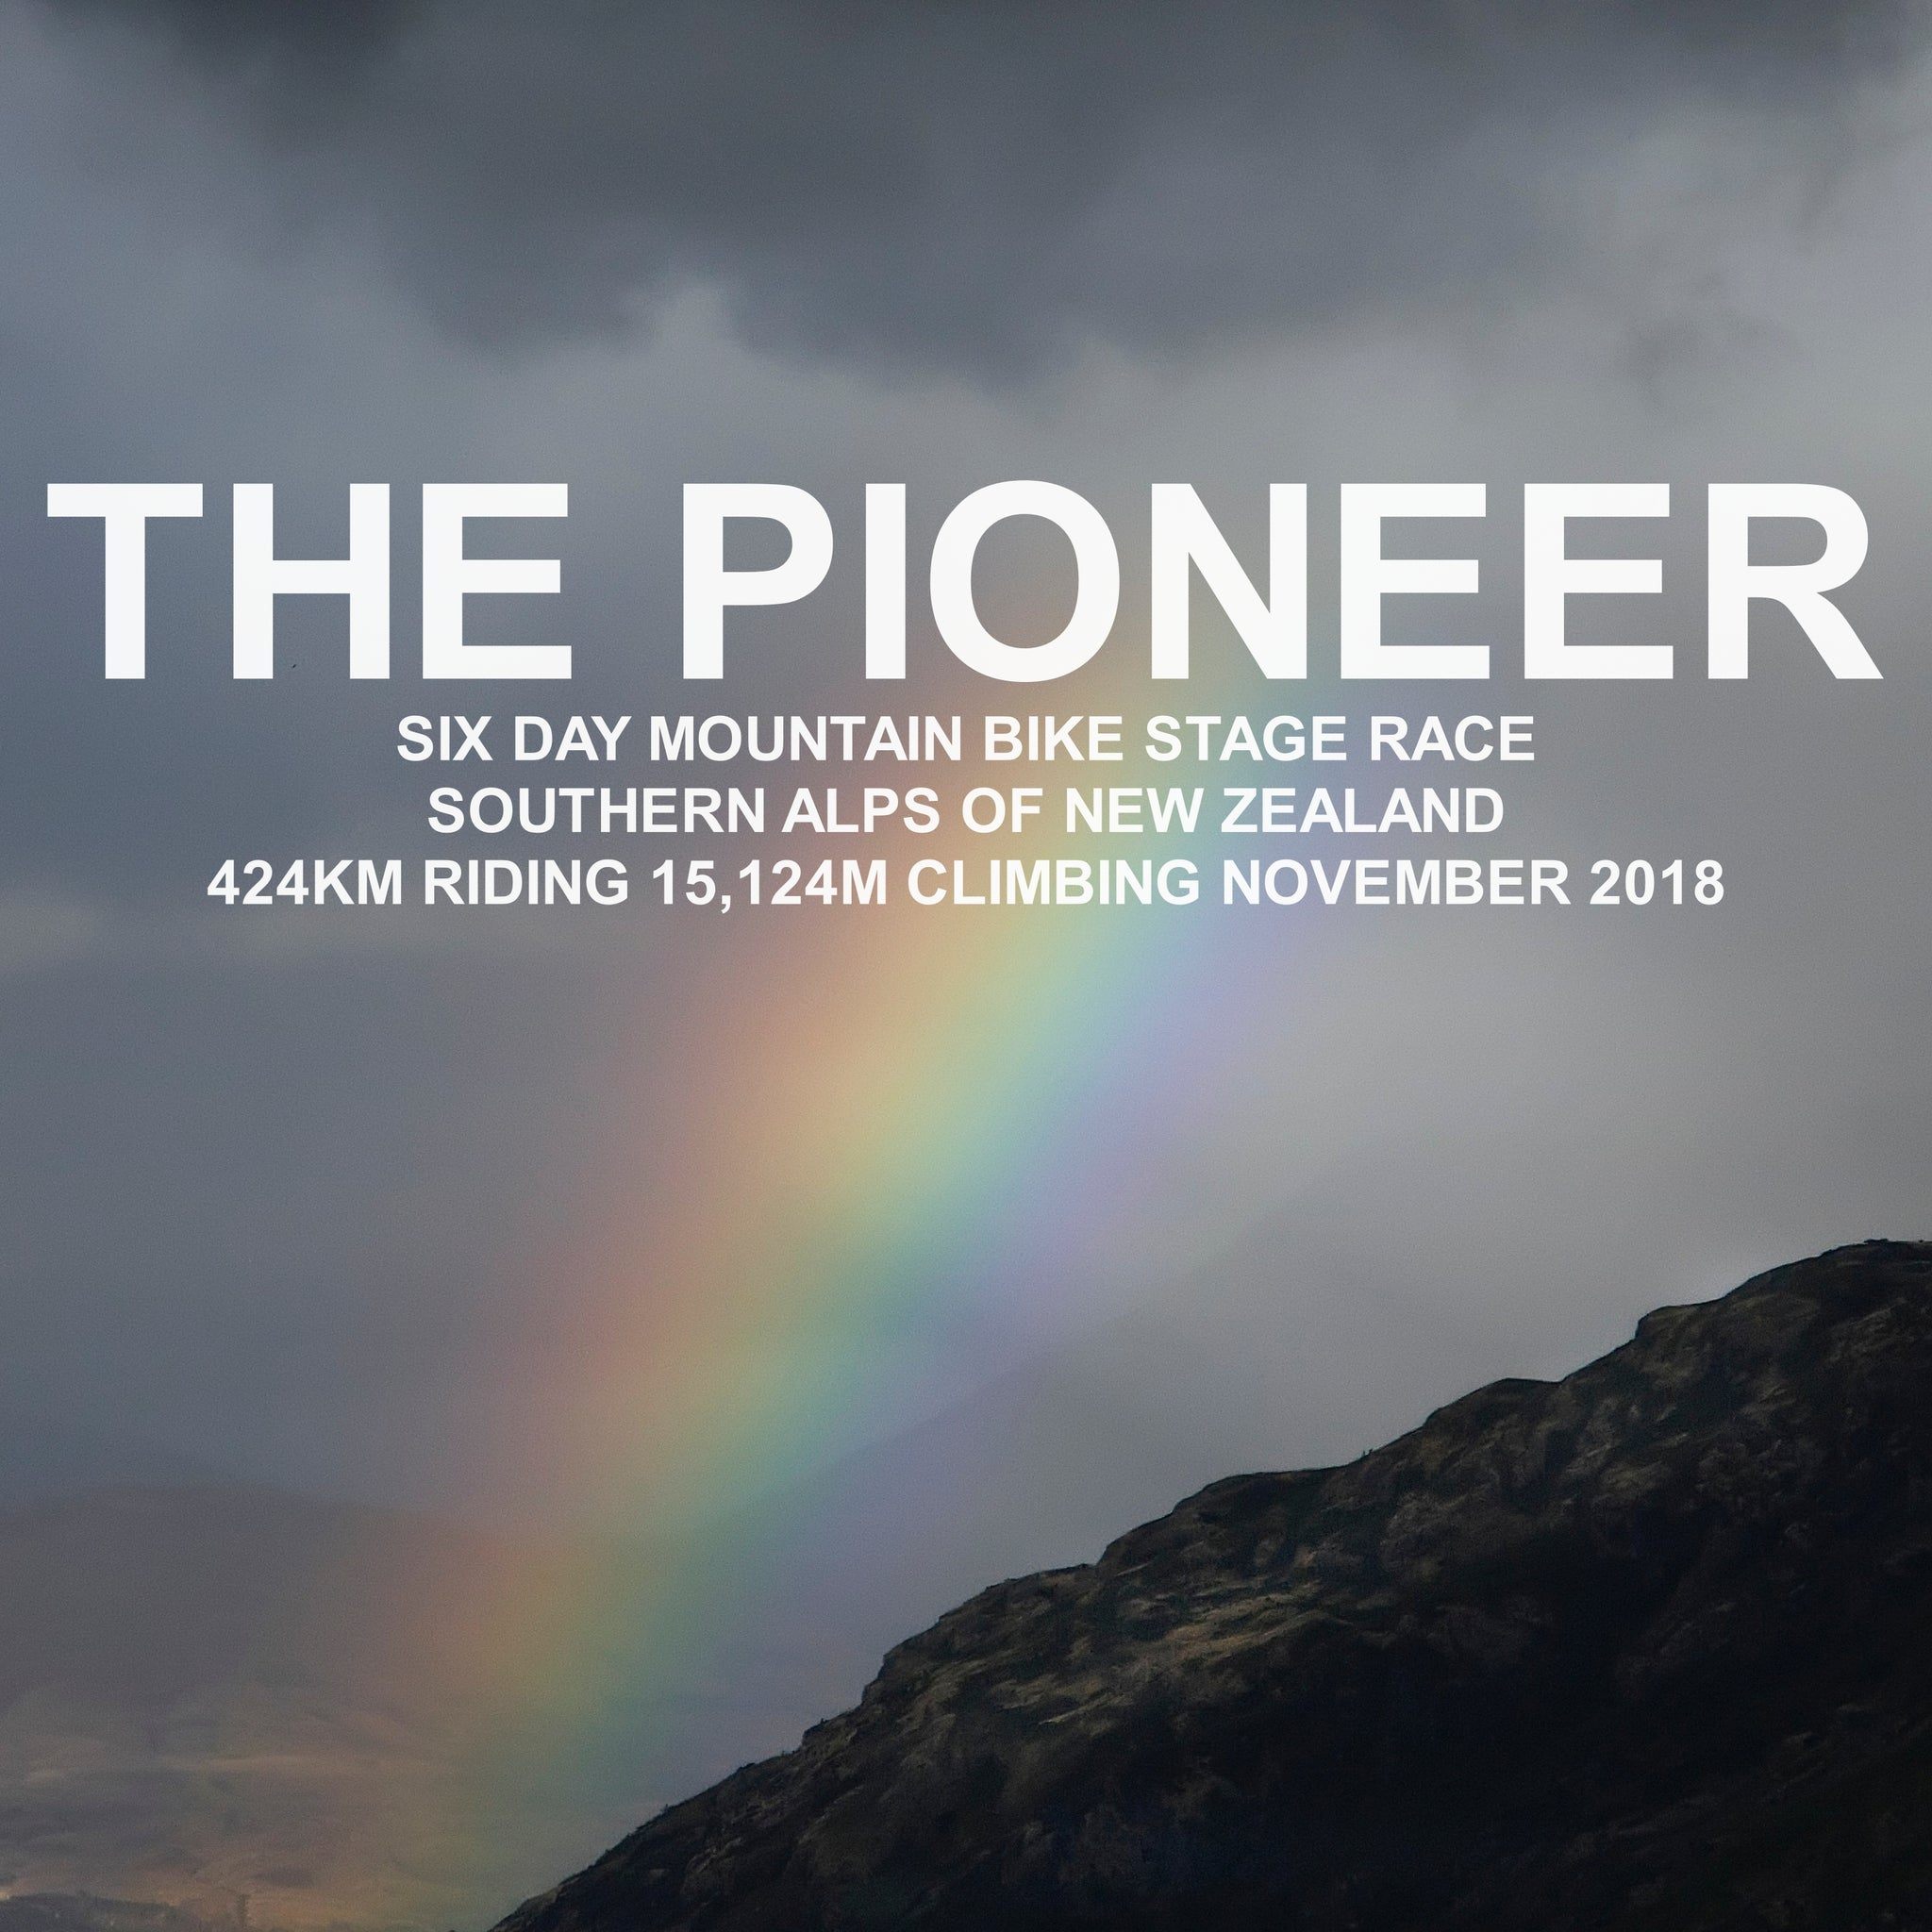 The Pioneer - 6 Day Mountain Bike Stage Race